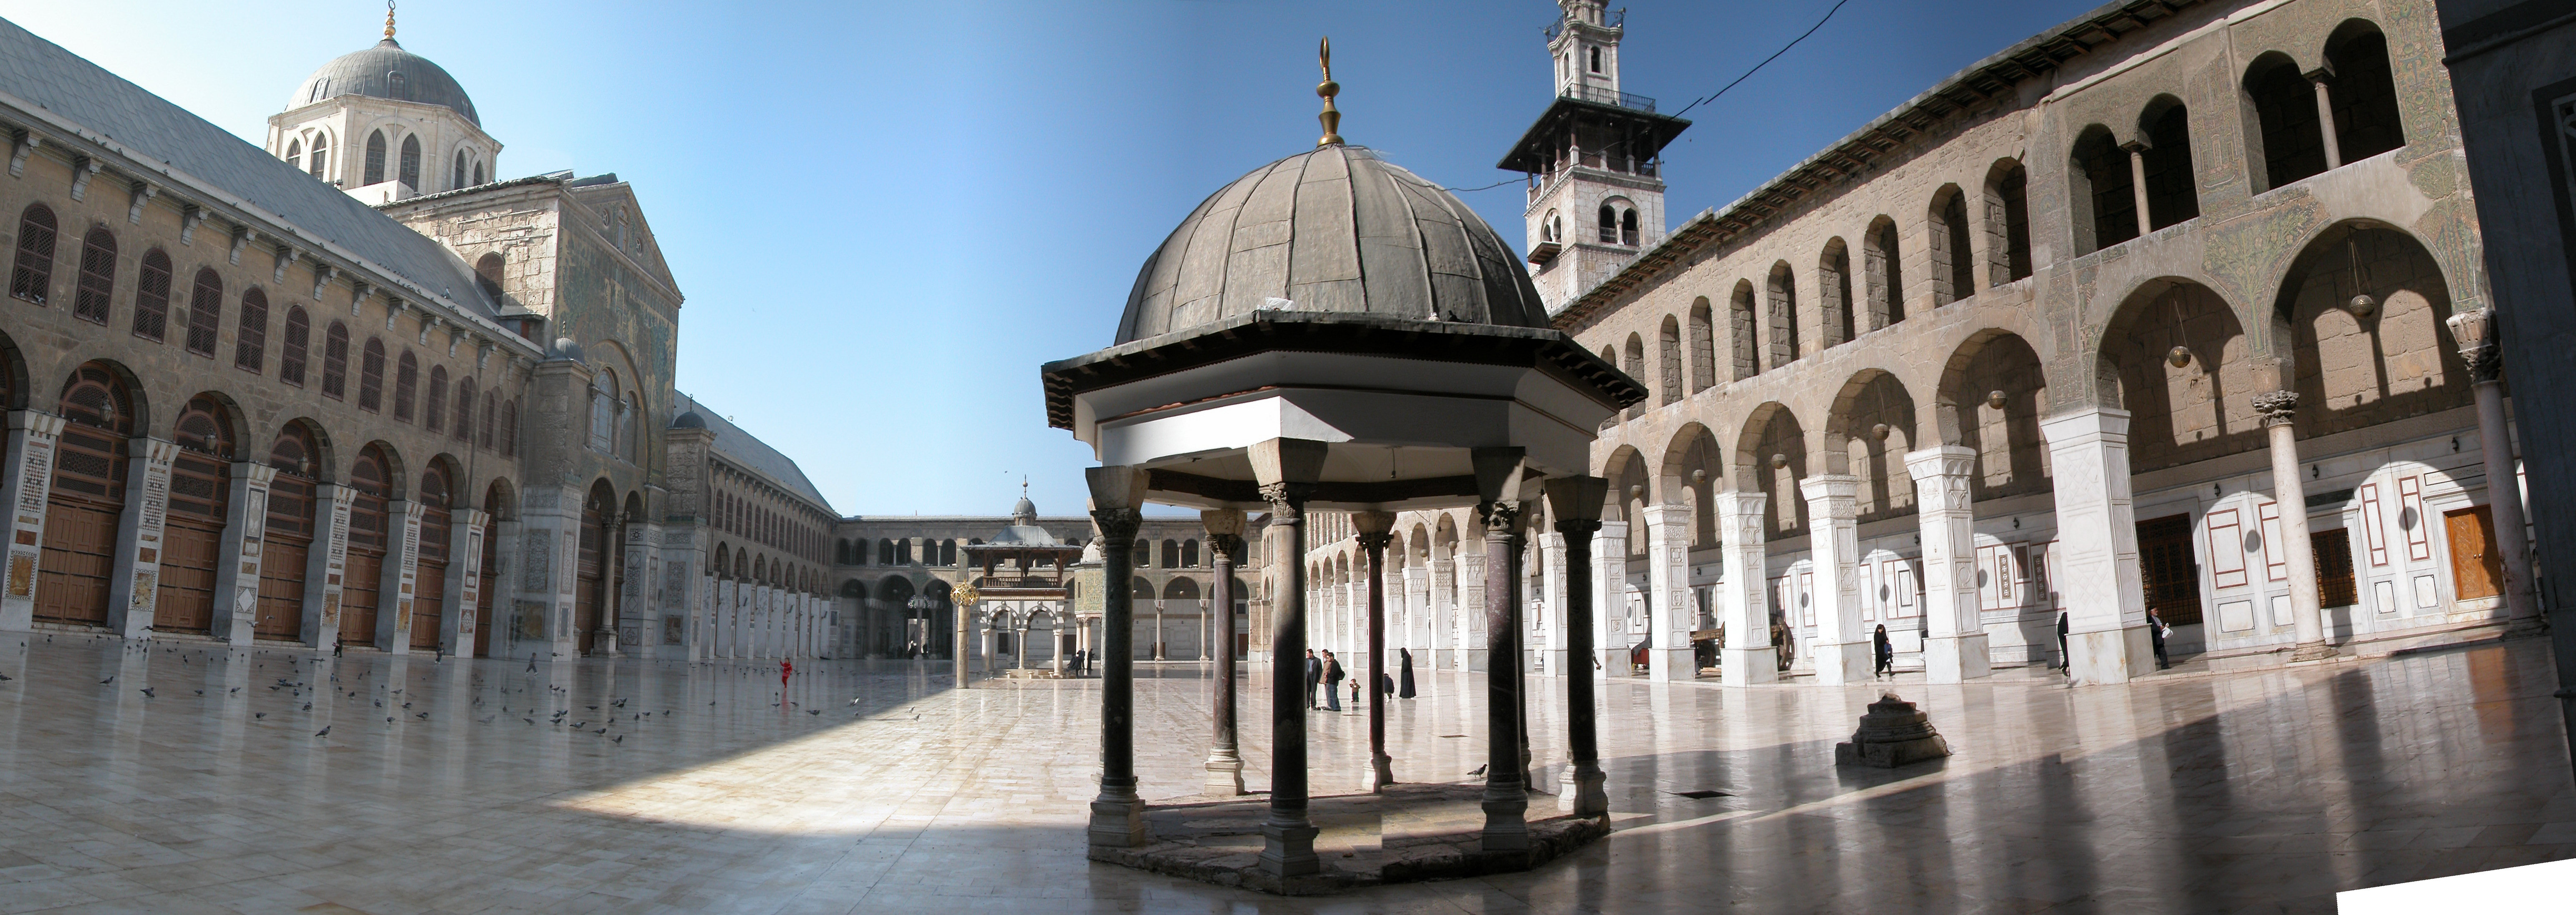 the great mosque od domascus Fb flood umayyad survivals and mamluk revivals: qalawunid architecture and the great mosque of damascus in his seminal paper on the theme of copying in medieval.